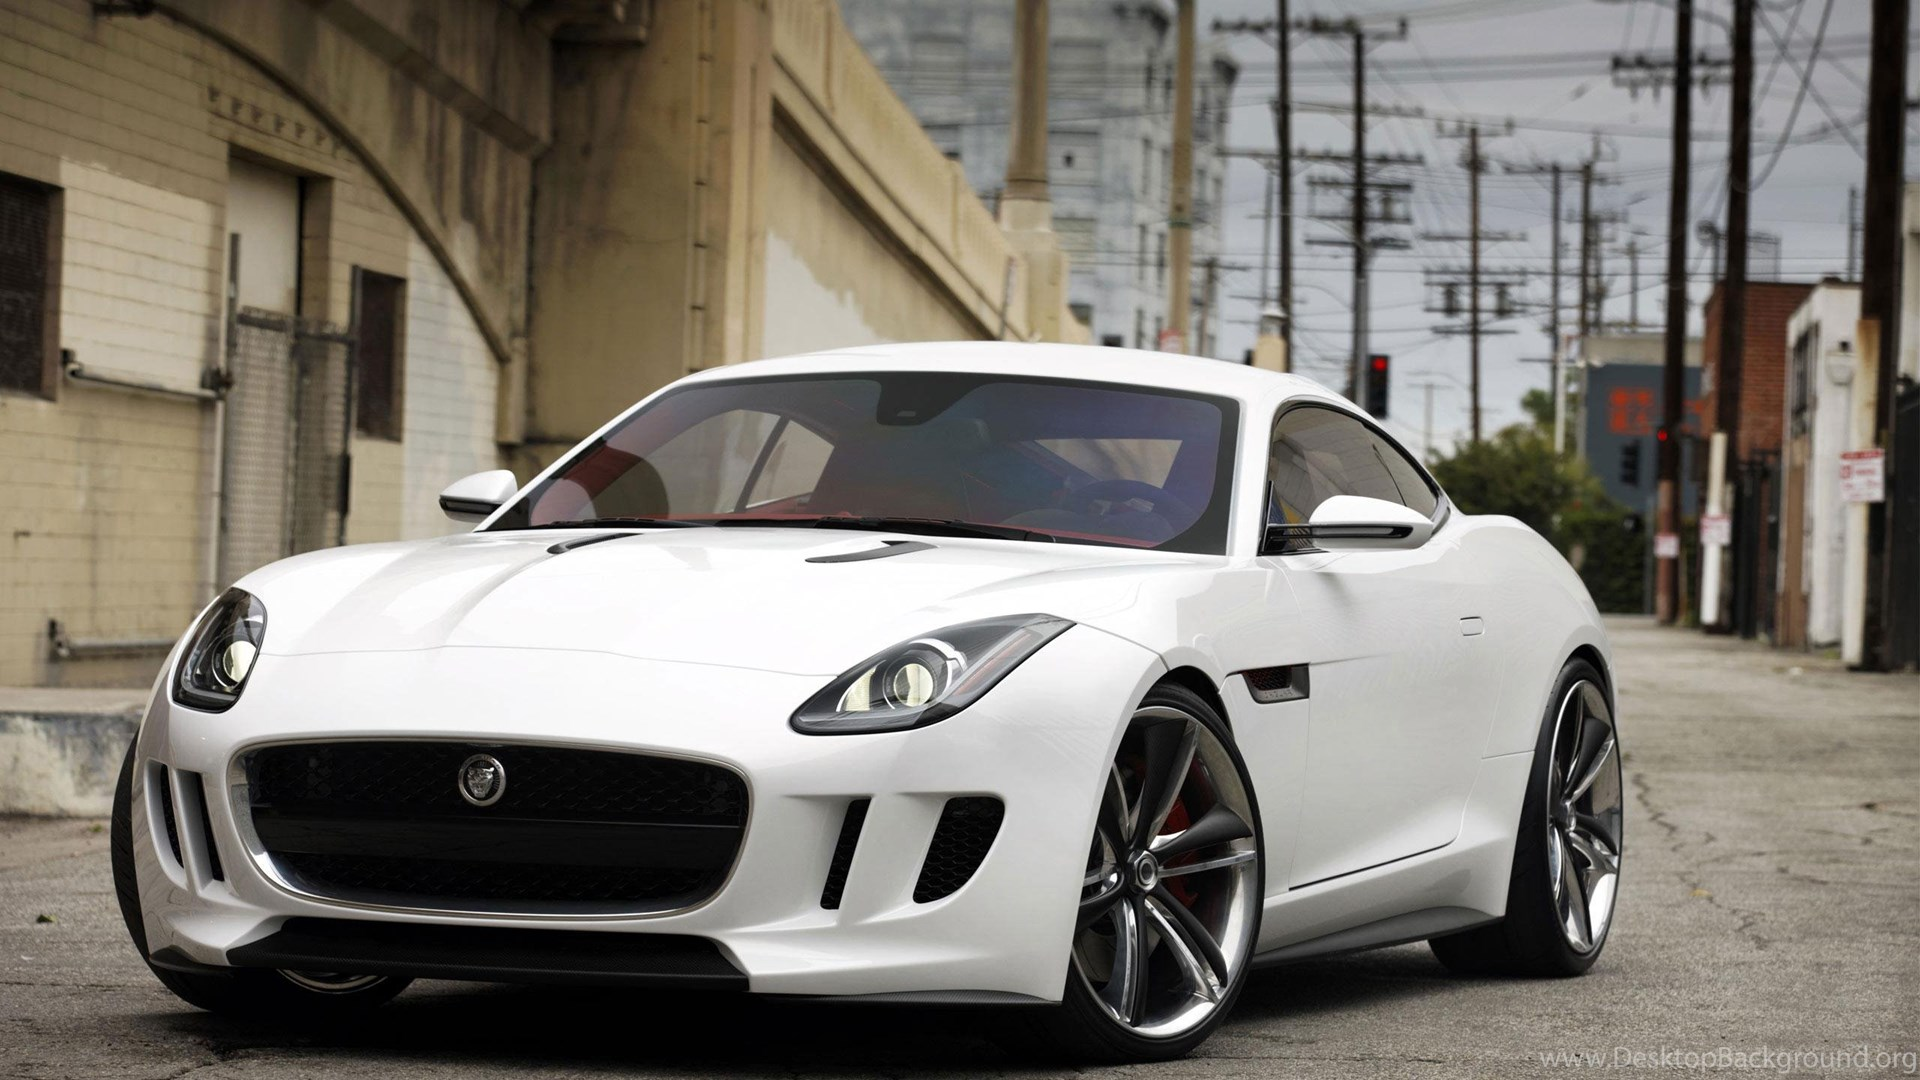 Jaguar Car Hd Wallpapers Download Johnywheels Com Desktop Background